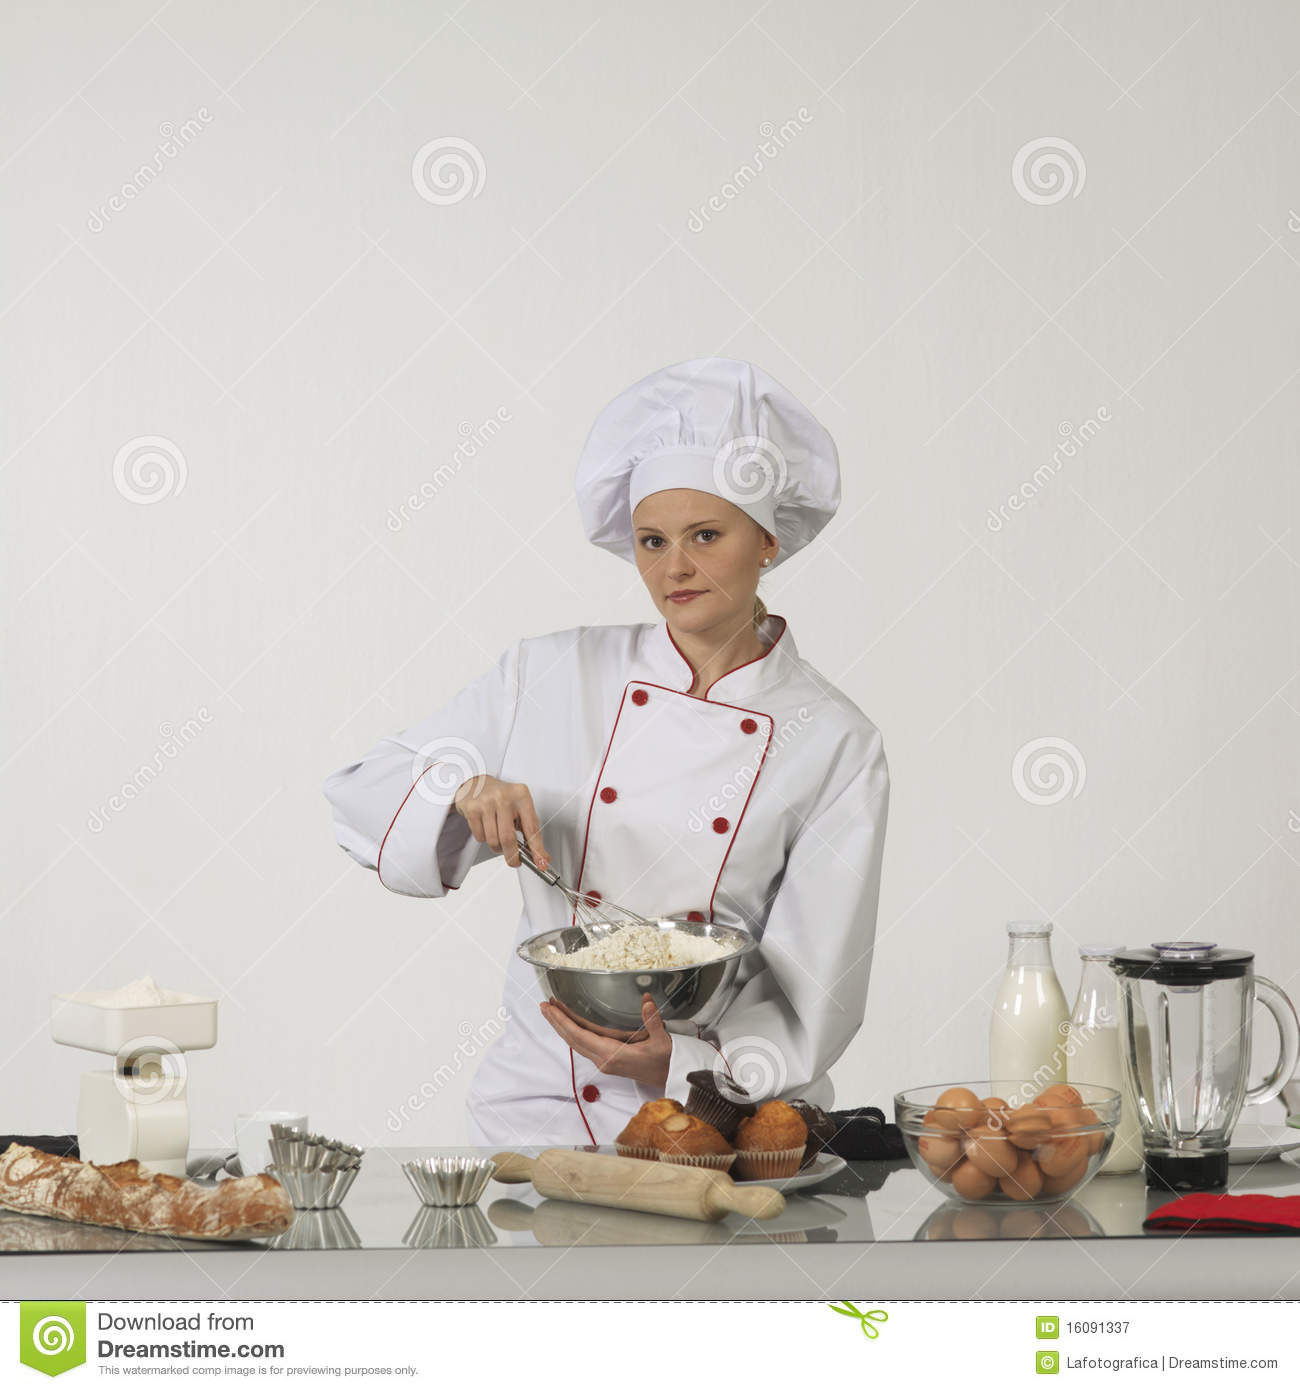 professional cook stock image image of kitchen occupation 16091337